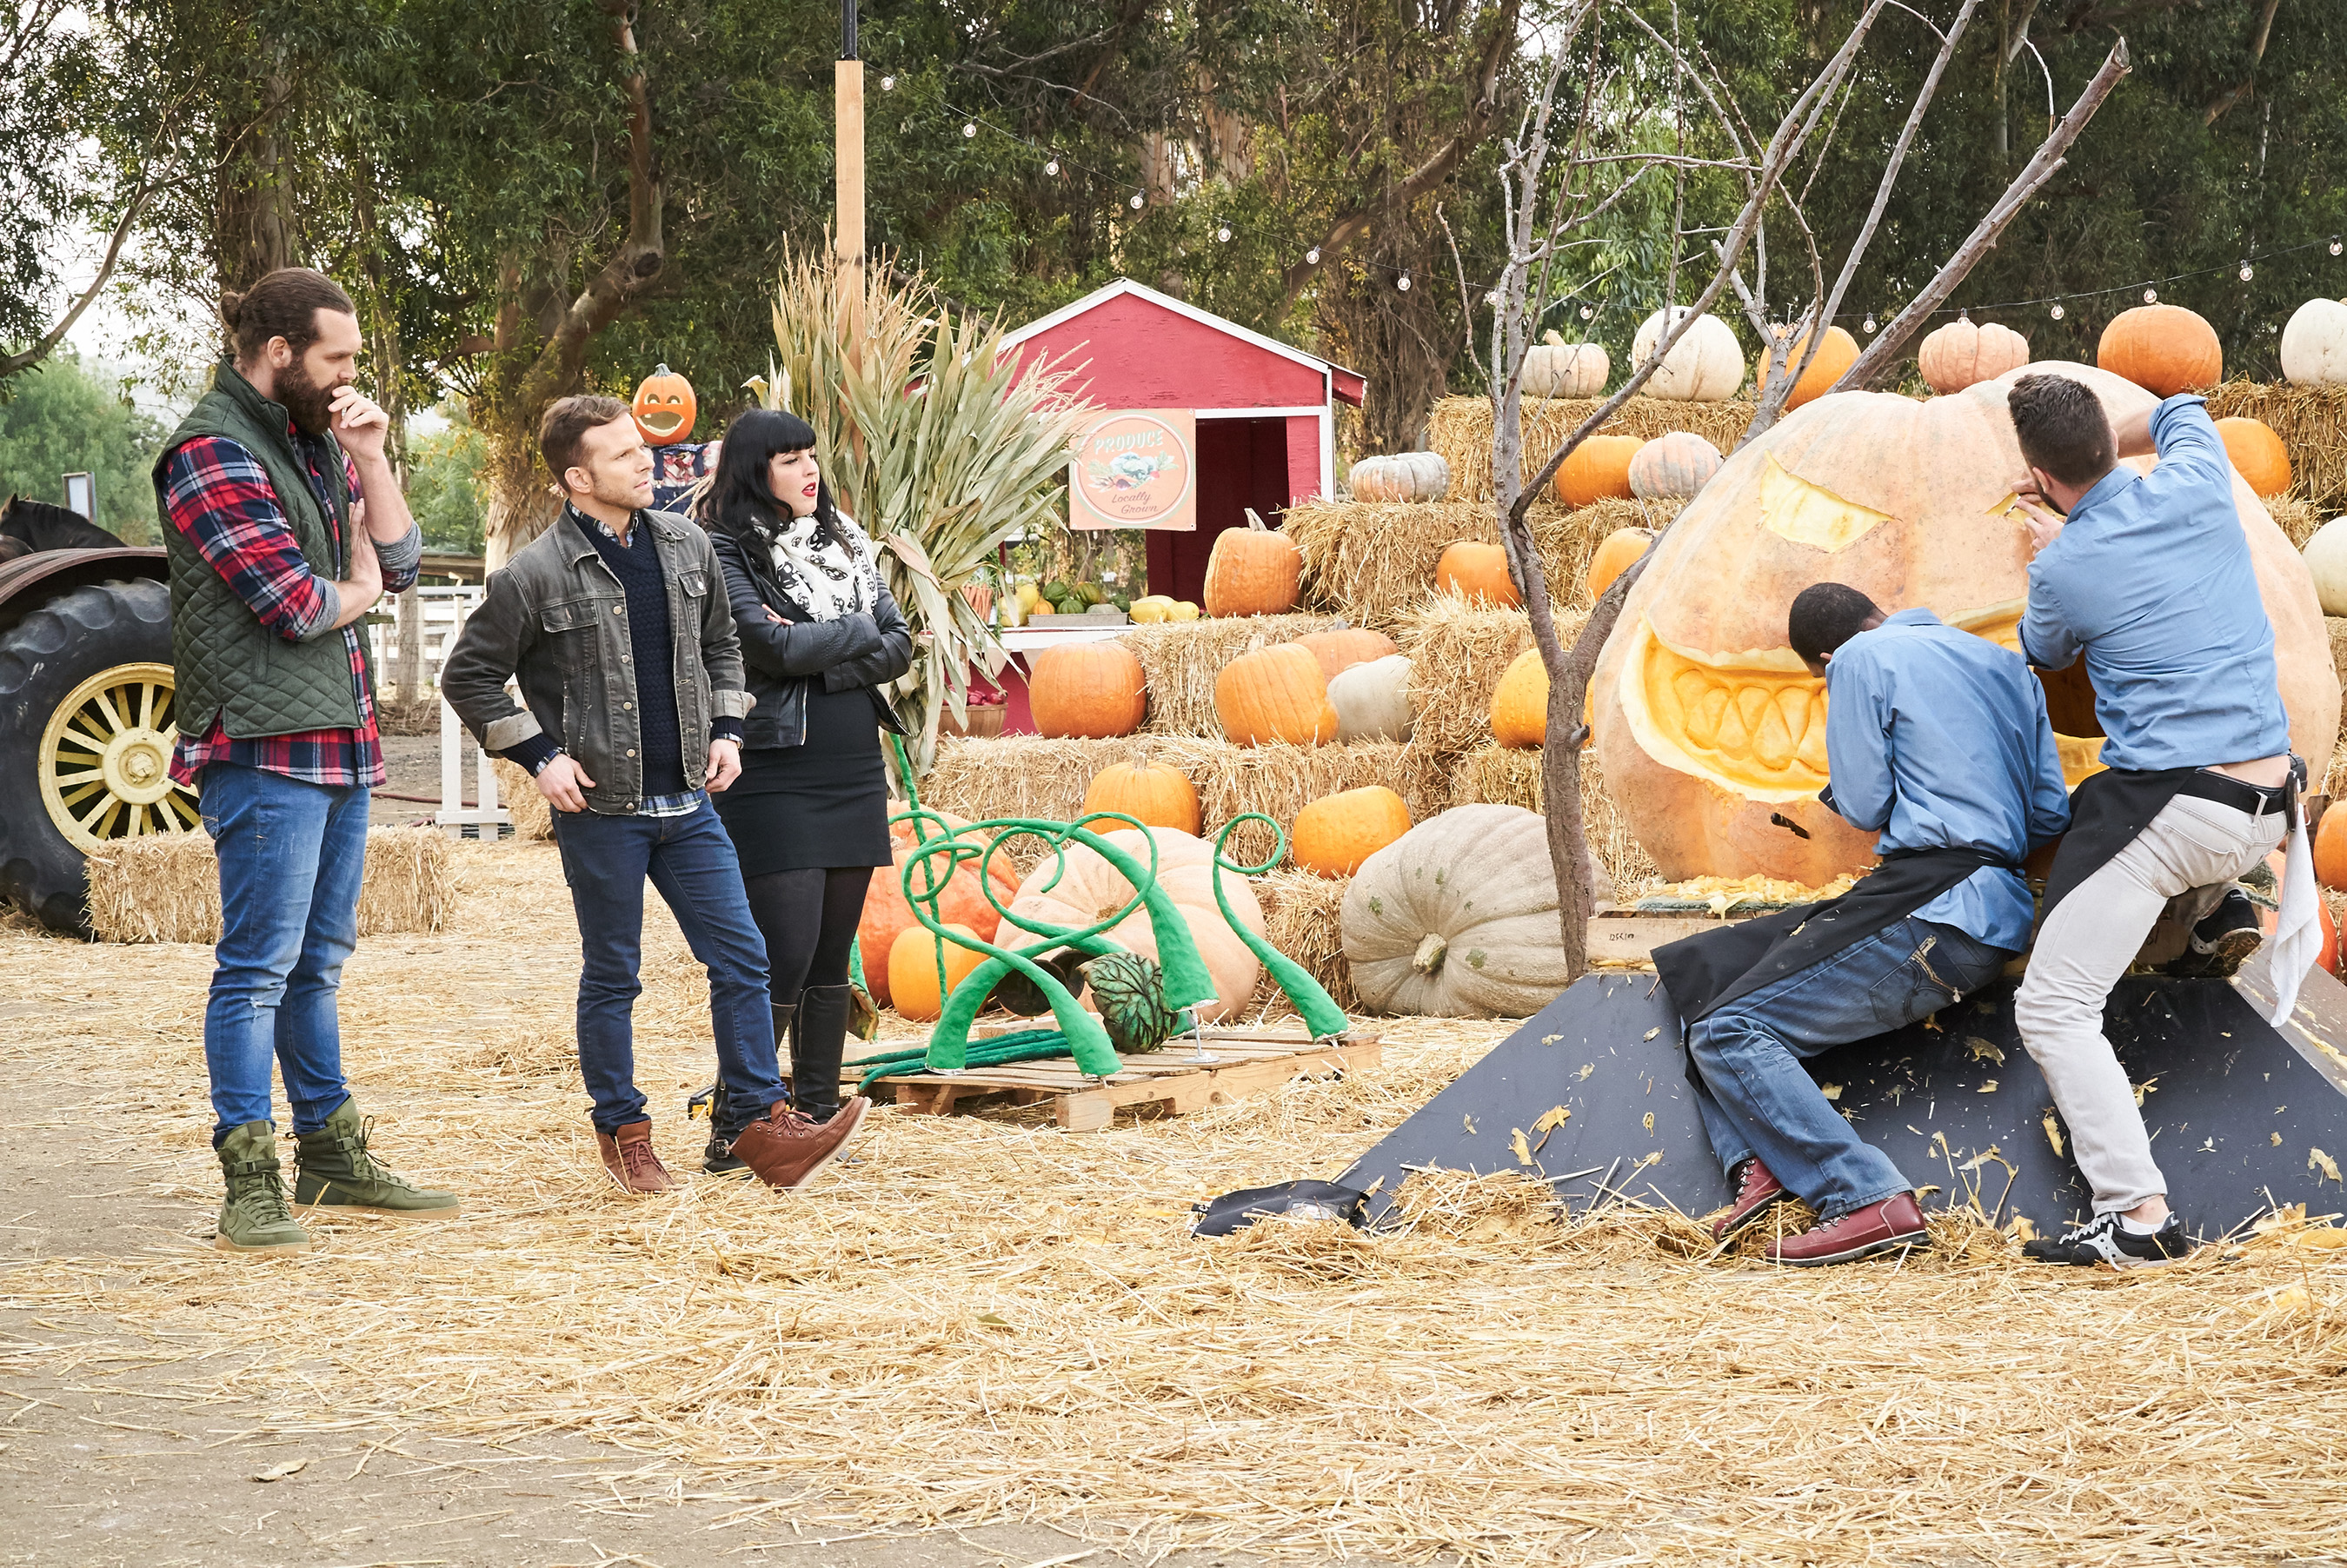 Host Harley Morenstein and judges Zac Young and Bianca Appice watch Chefs Adam Bierton and Stephen Baity of Team Deadly Intentions preparing their dish for the When Pumpkins Fight Back challenge, as seen on Food Network's 'Halloween Wars: Hayride of Horror', Season 1.